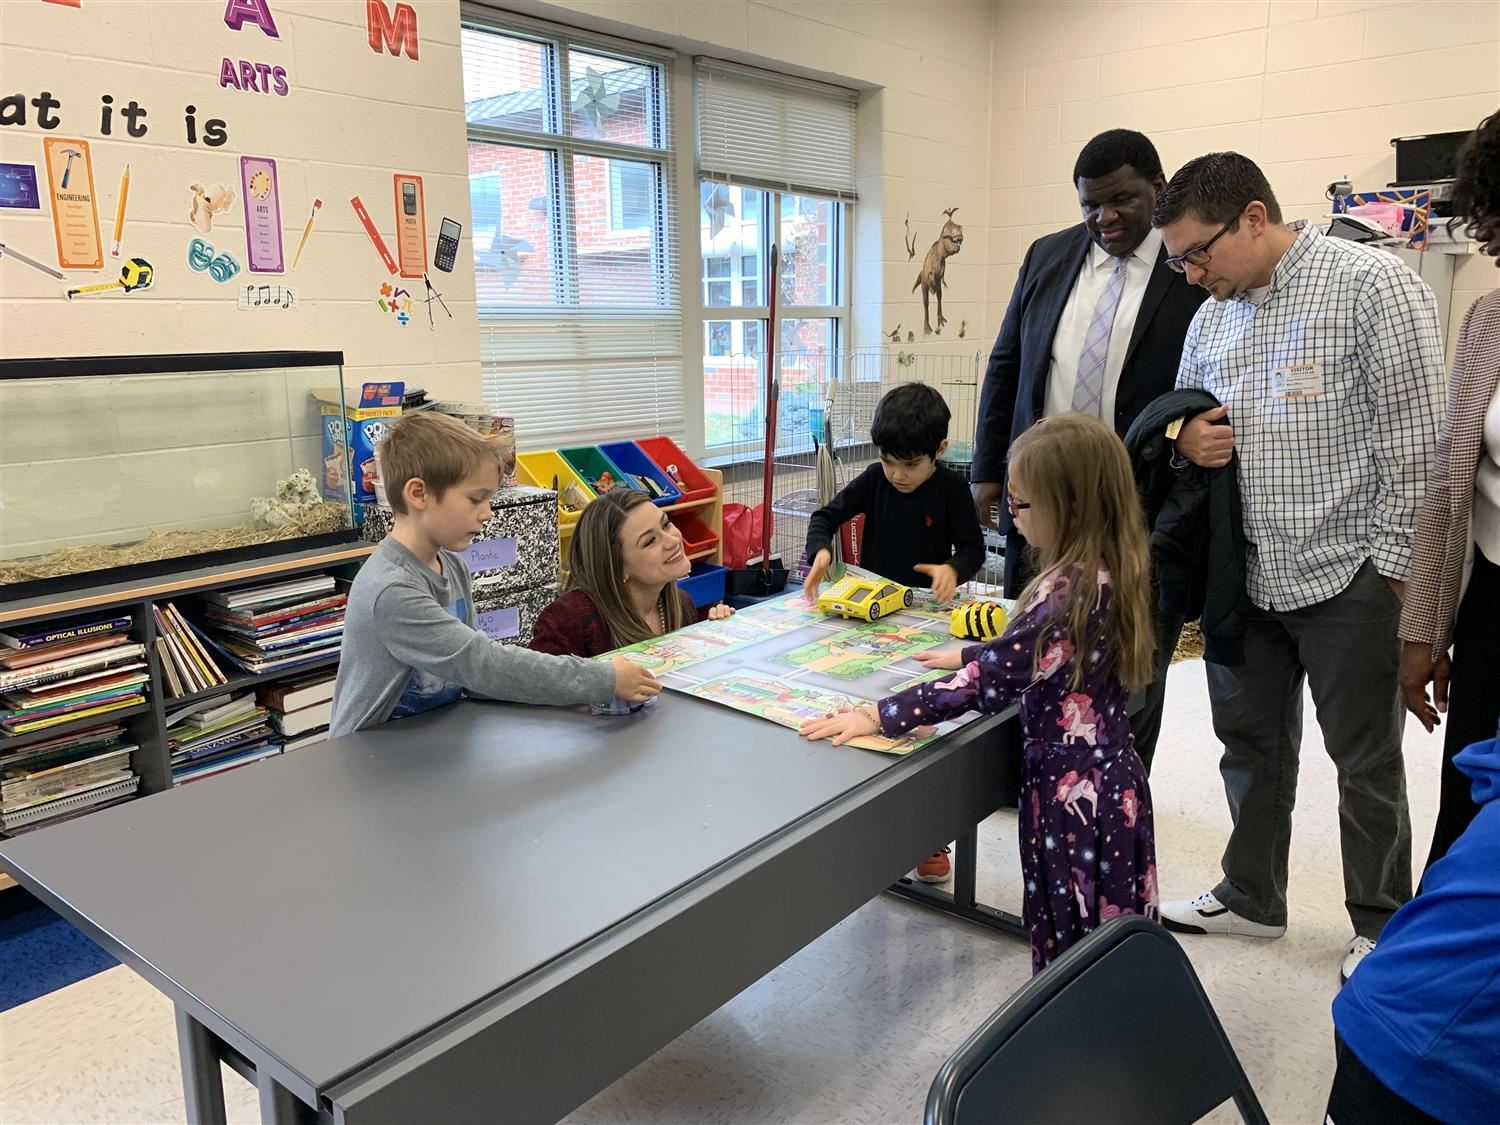 students and adults explore Bee-Bots